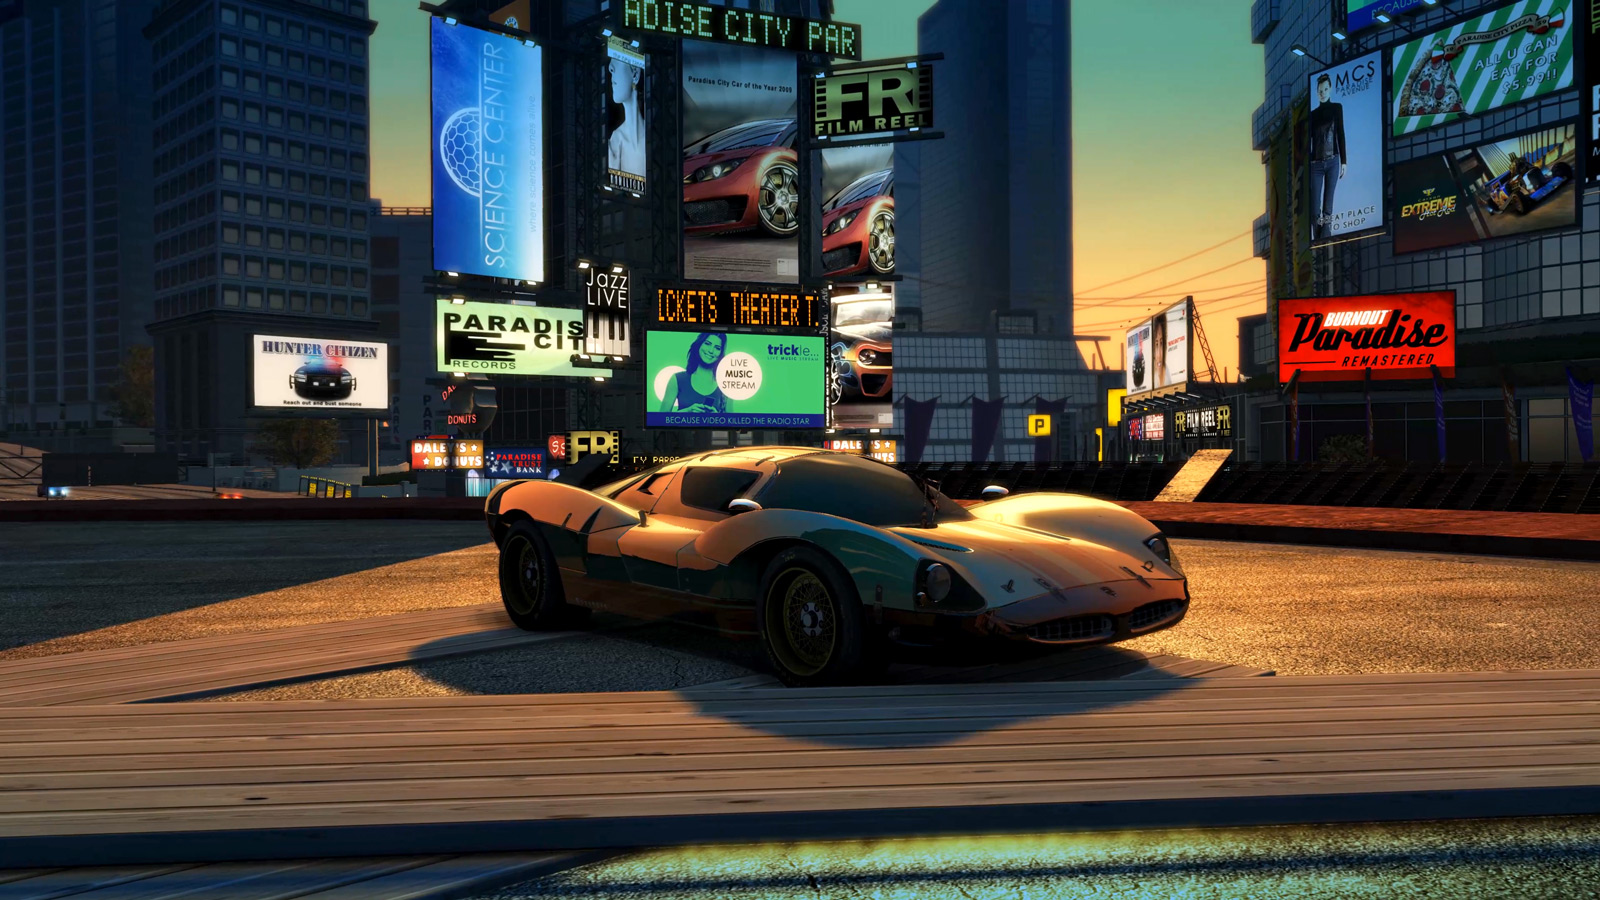 Burnout Paradise is back and remastered for current gen